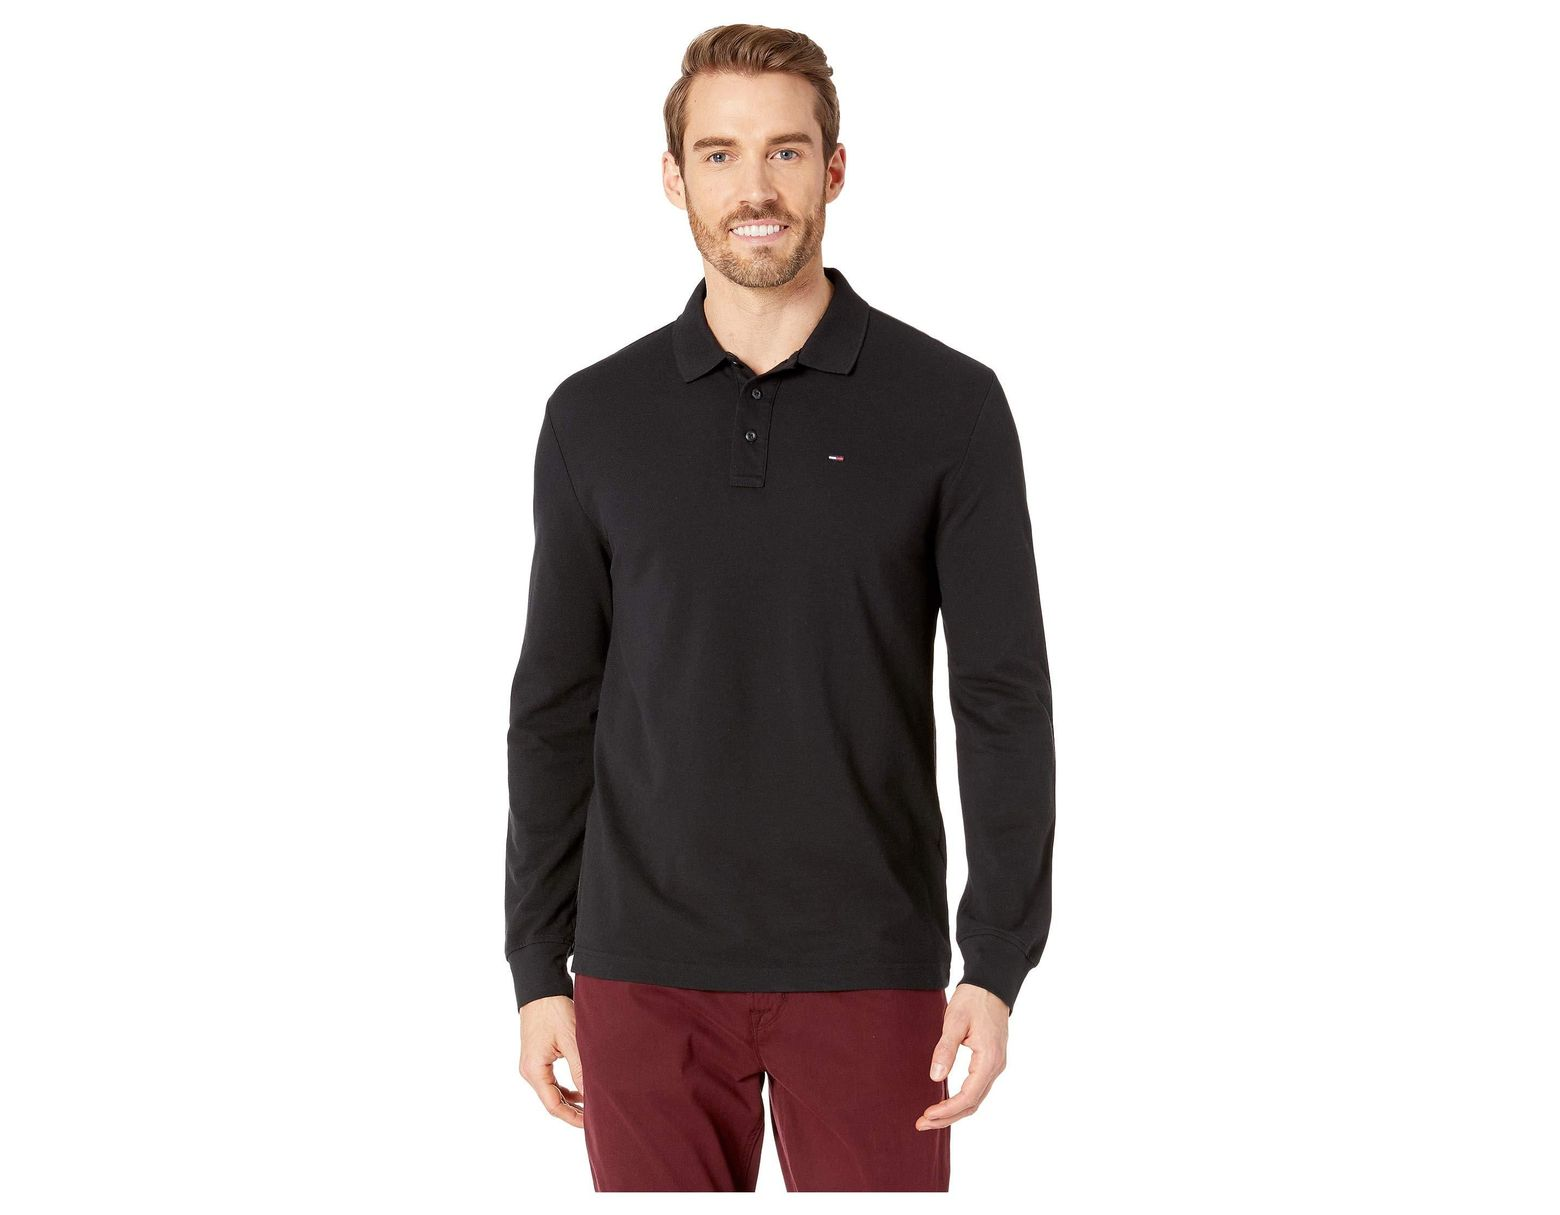 c8adb2c6d1784f Lyst - Tommy Hilfiger Essential Long Sleeve Polo in Black for Men - Save 23%